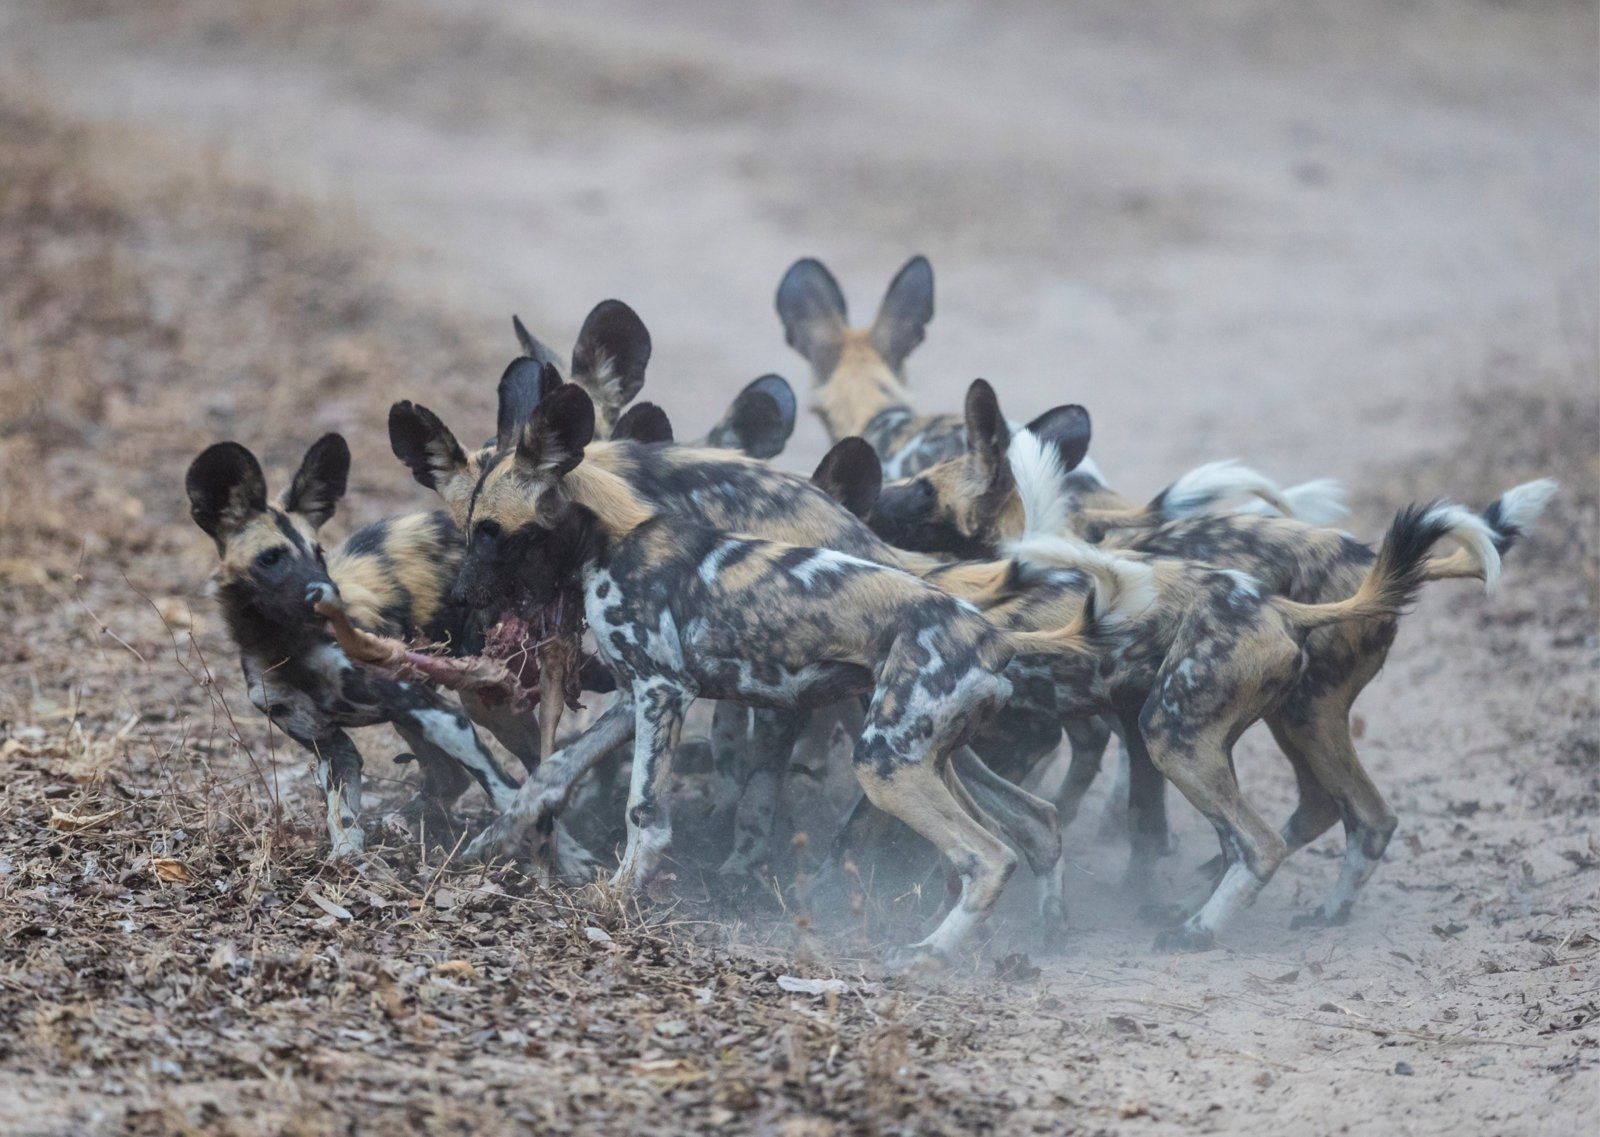 Wild dog midfield.jpg